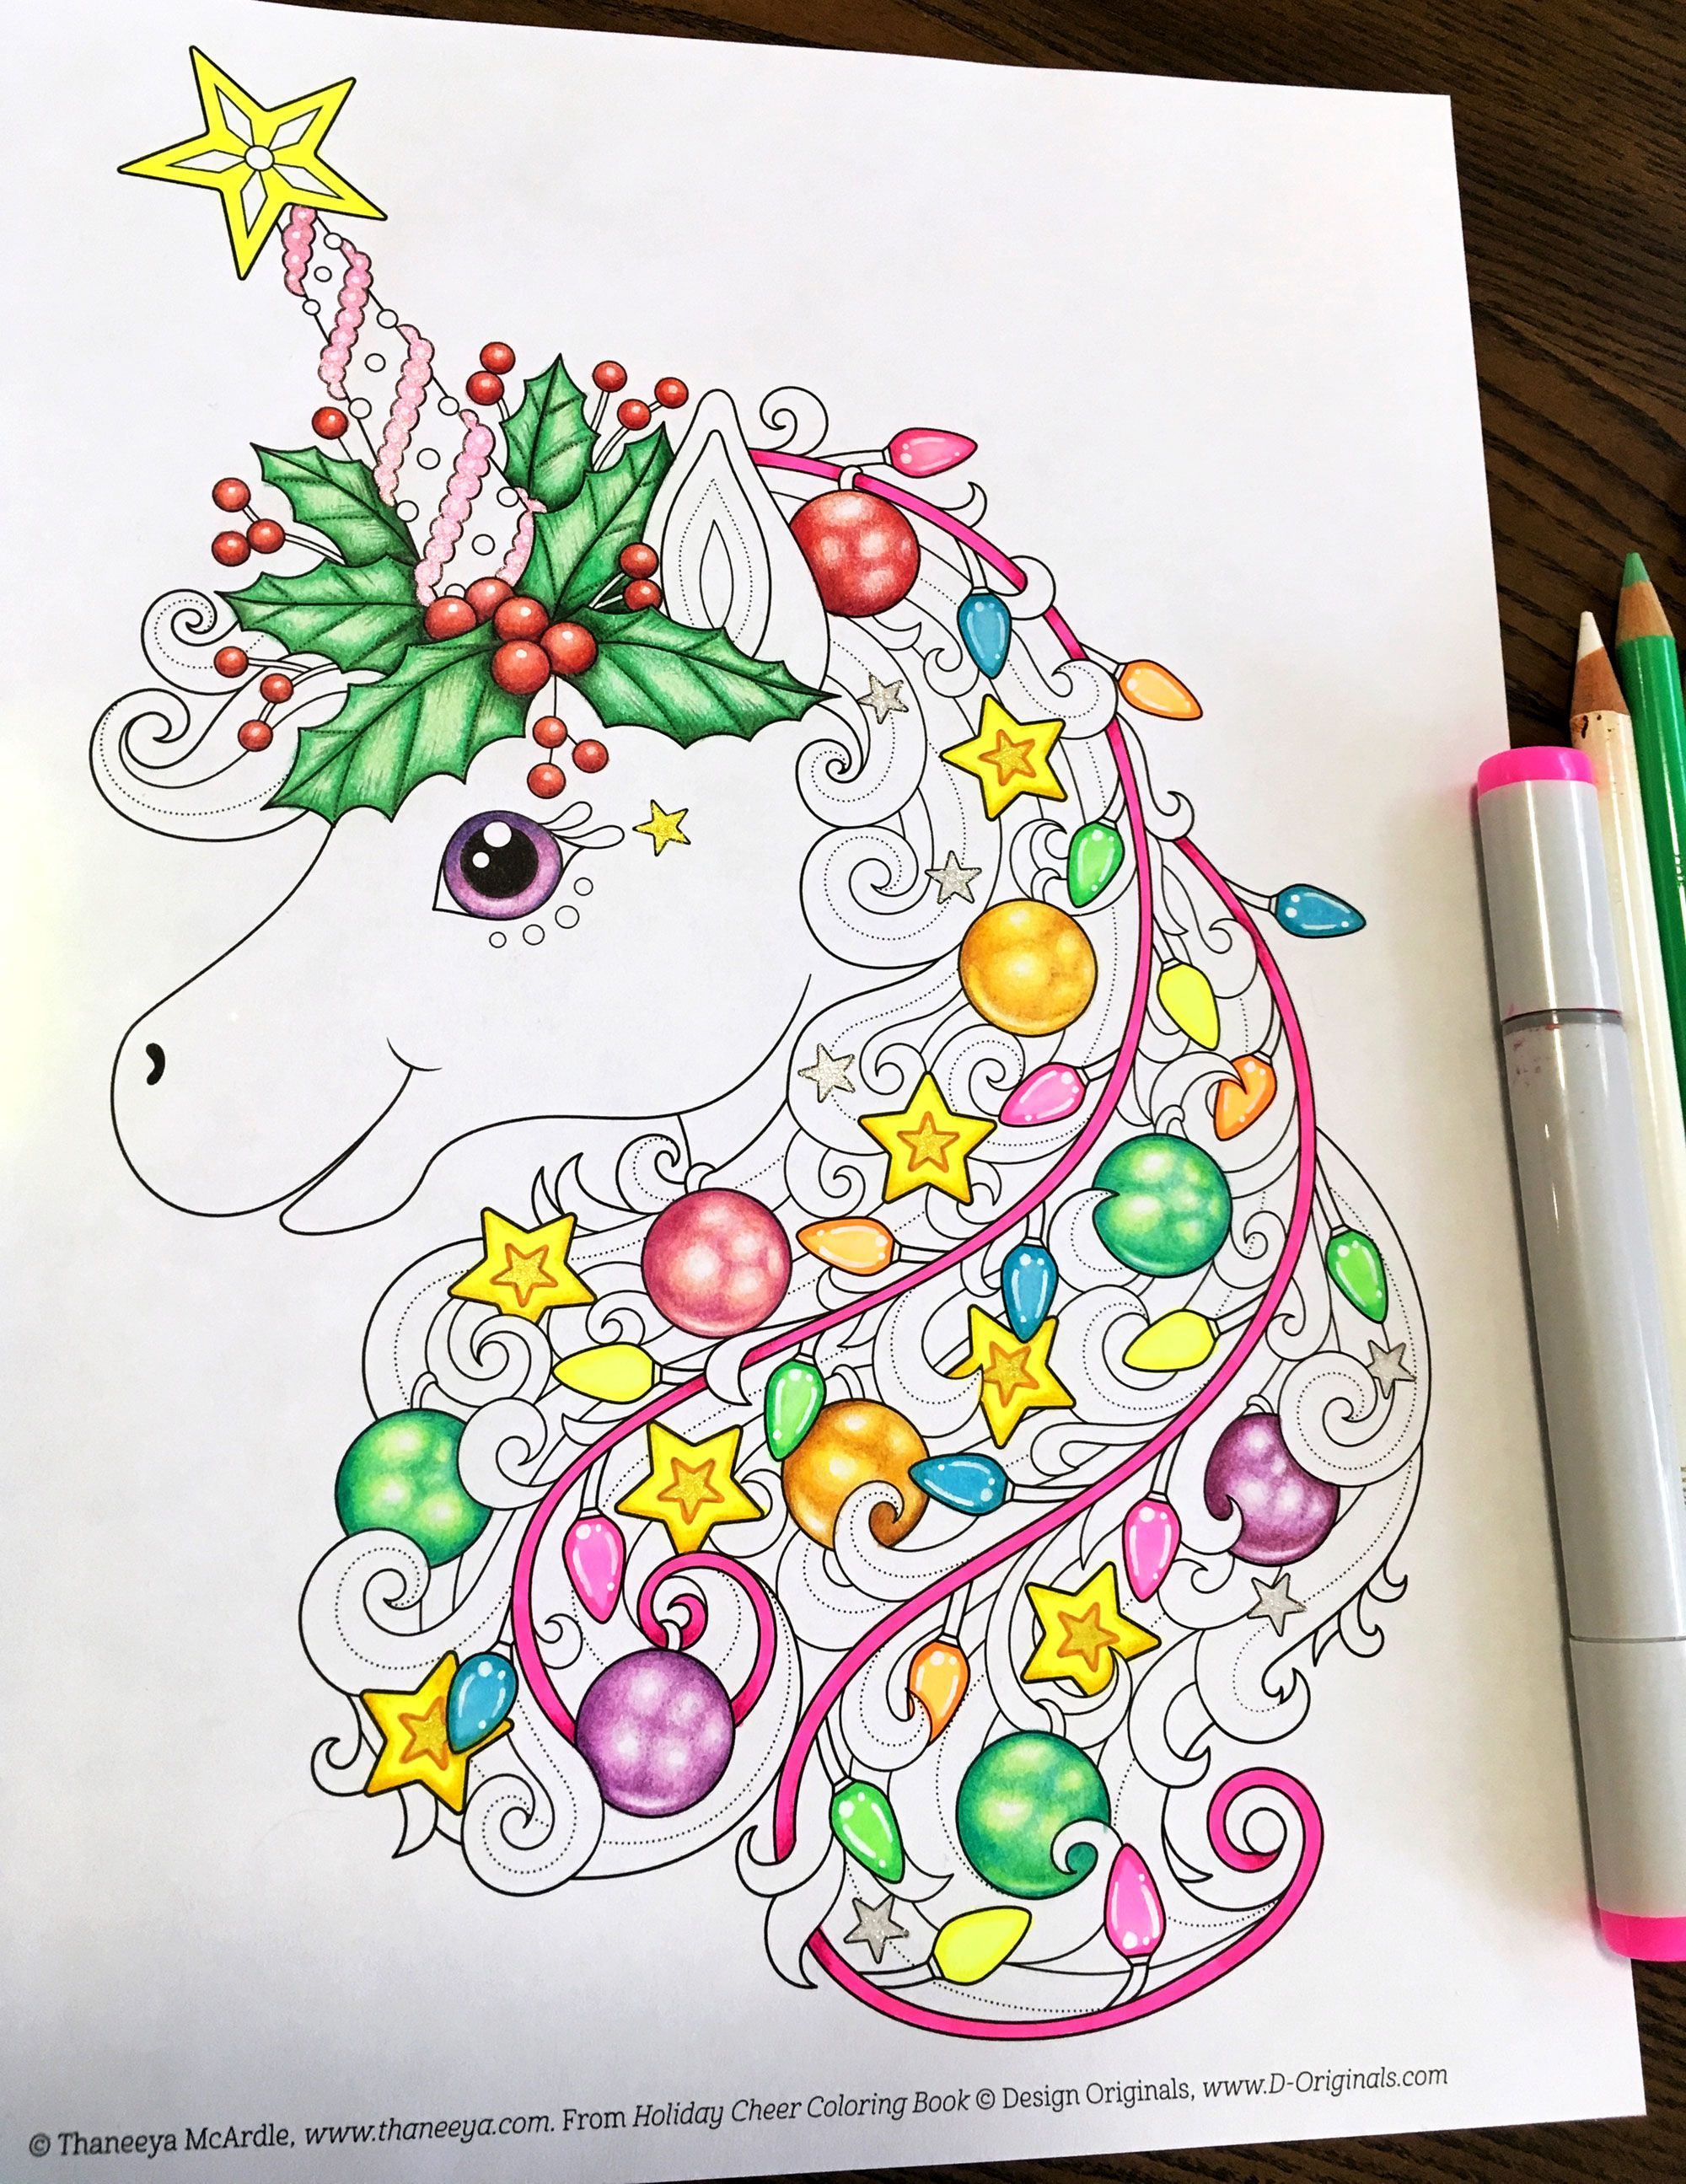 Christmas Unicorn Coloring Page By Thaneeya Mcardle Unicorn Coloring Pages Coloring Books Christmas Coloring Pages